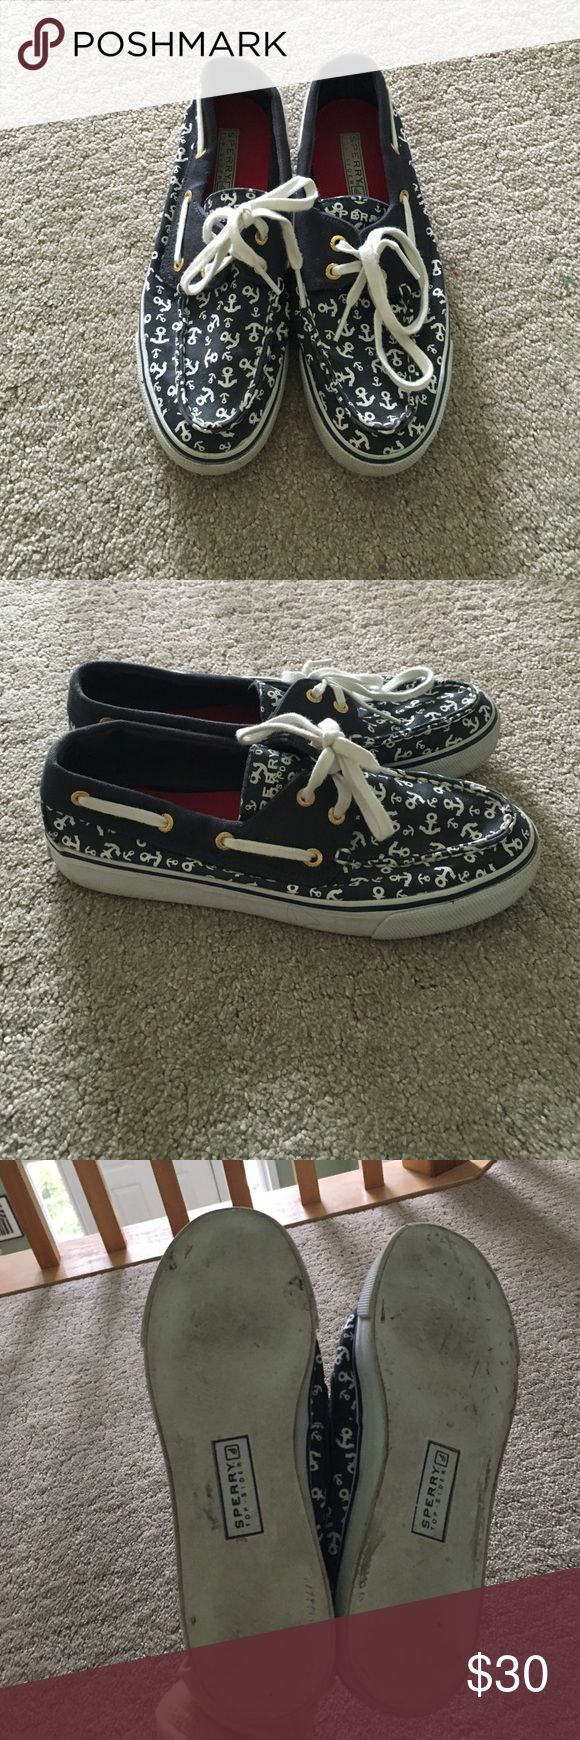 ❤️SPERRY SALE ⚡️⚡️ Adorable Speerys with anchors all over them. Worn 3-4 times. Super comfortable and perfect for summer!! Sz 6 Sperry Top-Sider Shoes